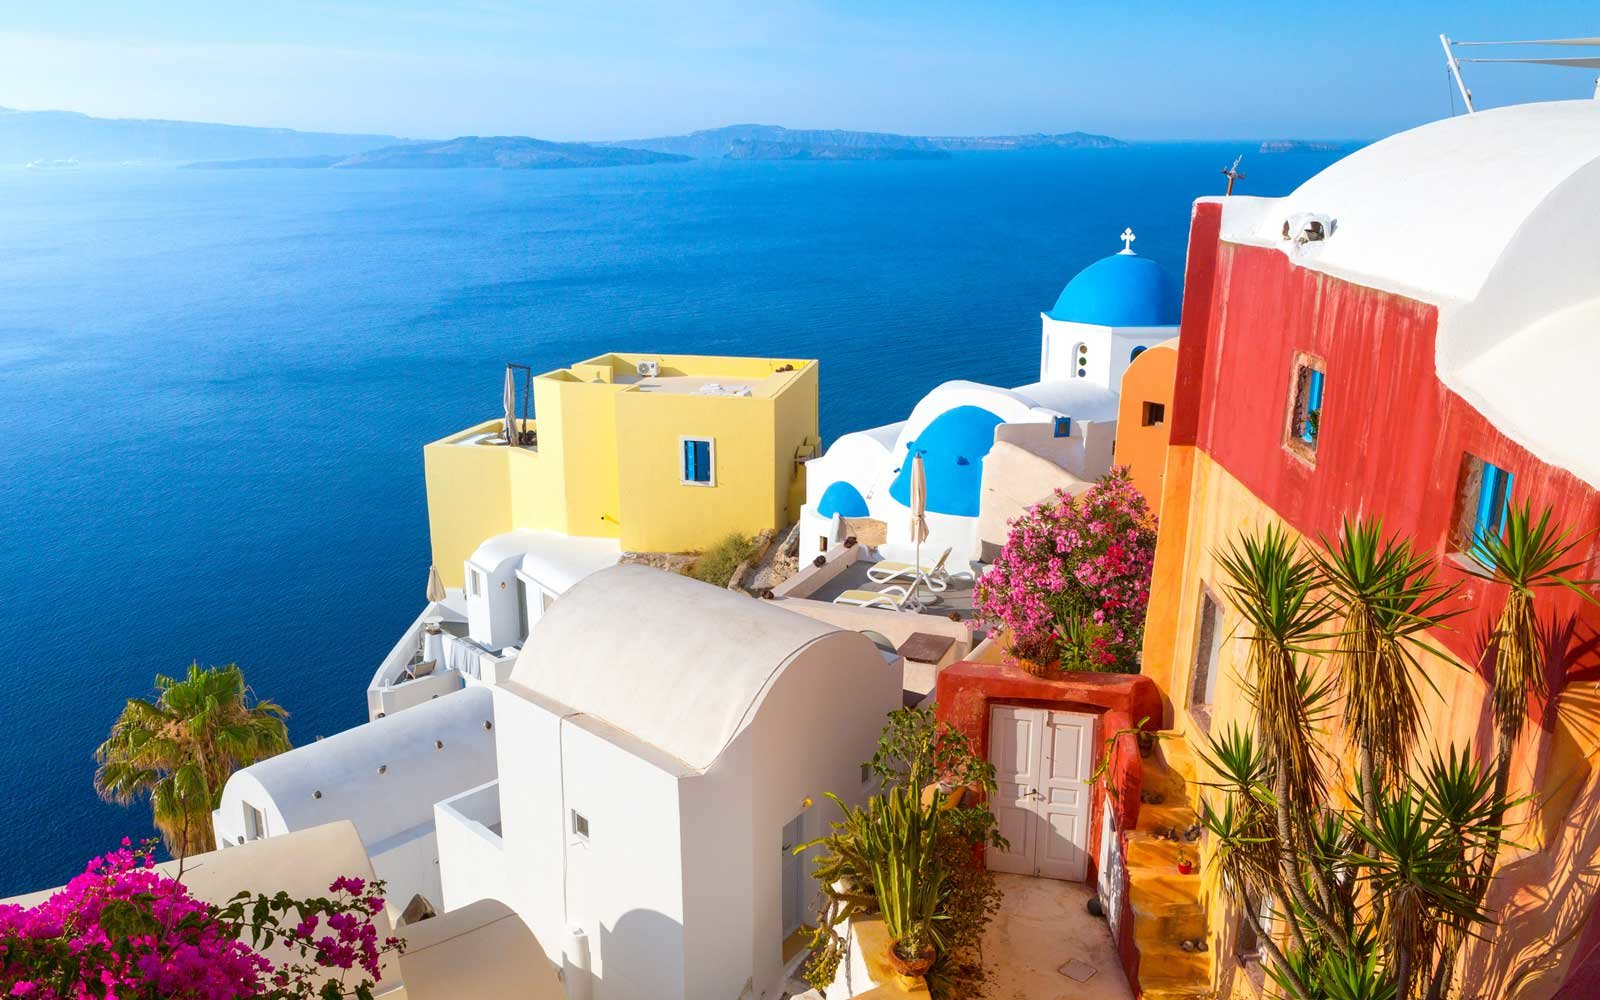 4. Santorini, Greece